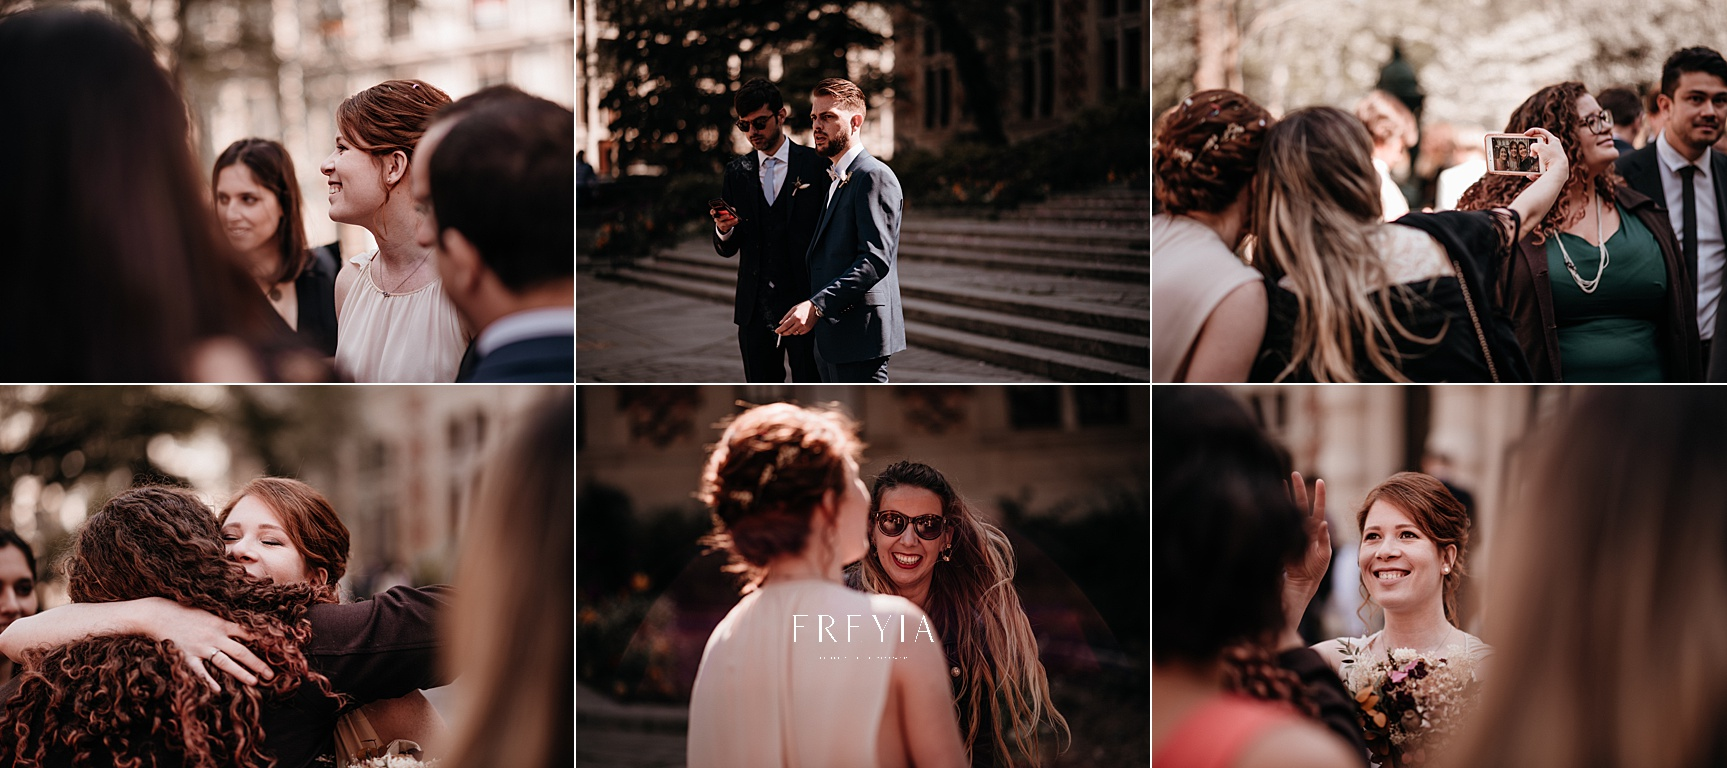 P + F |  mariage reportage alternatif moody intime vintage naturel boho boheme |  PHOTOGRAPHE mariage PARIS france destination  | FREYIA photography_-125.jpg